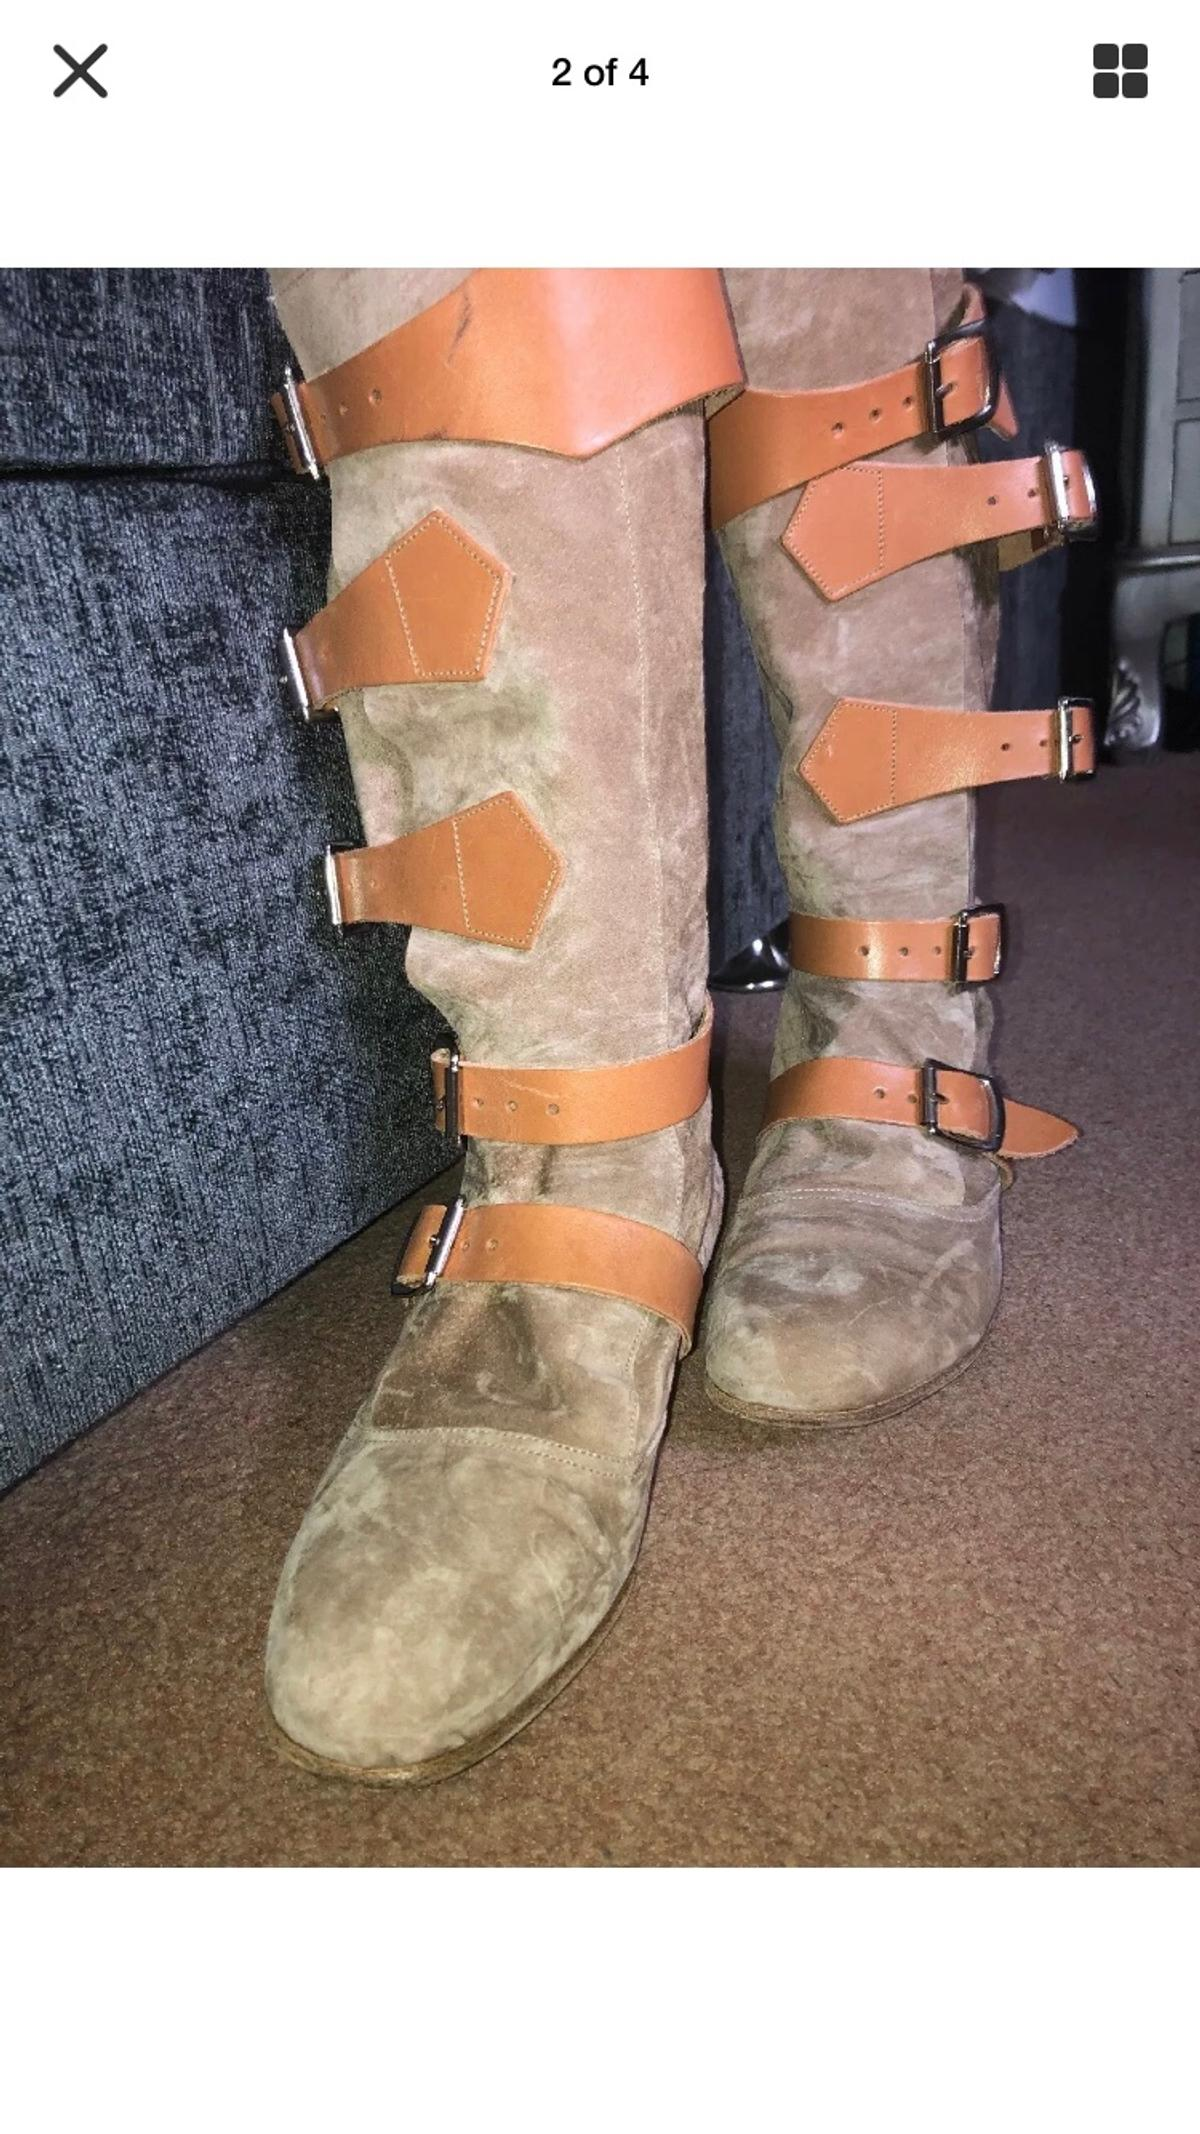 Vivienne Westwood pirate boots size 5 worn a few times